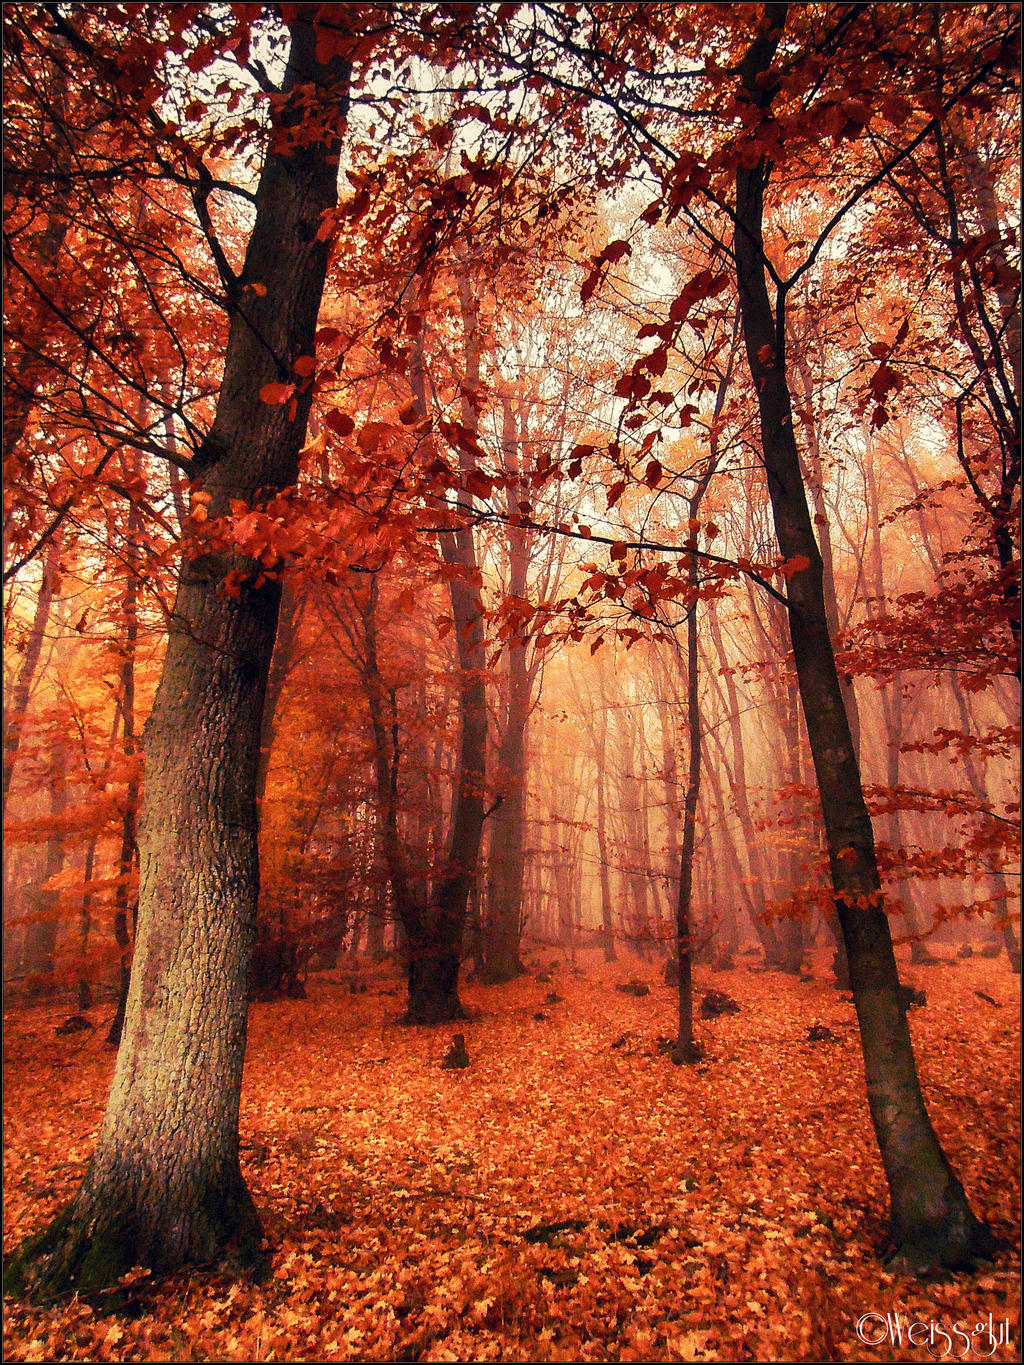 Autumn Forest Taiwan: Autumn Forest By Weissglut On DeviantArt